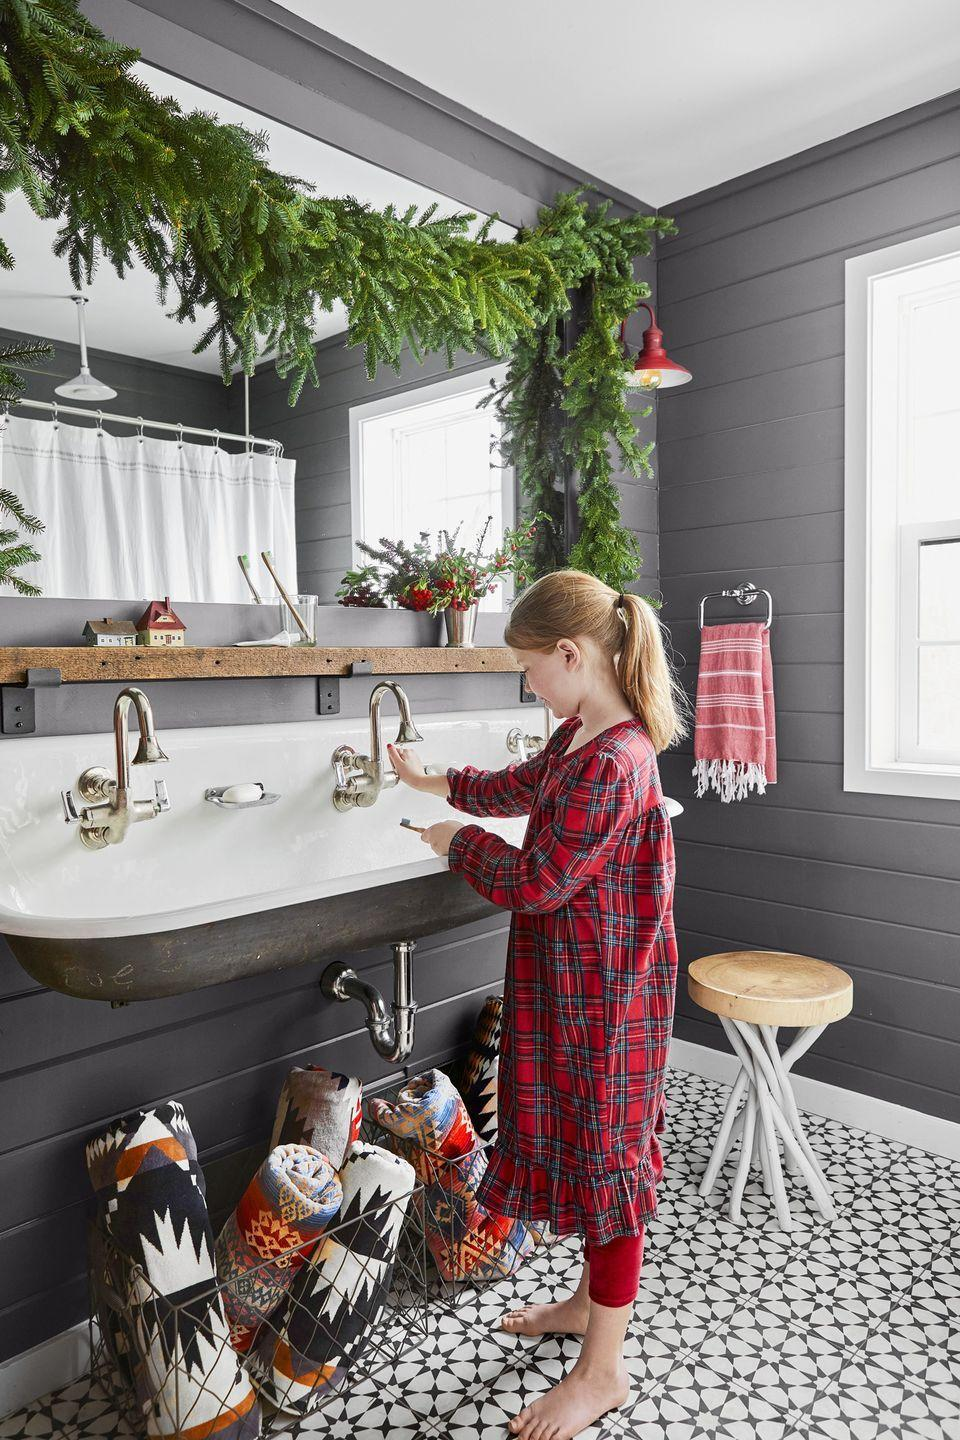 """<p>Add a <a href=""""https://www.countryliving.com/diy-crafts/g658/christmas-garlands-1208/"""" rel=""""nofollow noopener"""" target=""""_blank"""" data-ylk=""""slk:simple string of garland"""" class=""""link rapid-noclick-resp"""">simple string of garland</a> anywhere—yes, even in the bathroom!—to make every inch of your home merry and bright.</p><p><a class=""""link rapid-noclick-resp"""" href=""""https://www.amazon.com/Vickerman-Unlit-Camden-Fir-Garland/dp/B0029OL3H4?tag=syn-yahoo-20&ascsubtag=%5Bartid%7C10050.g.1247%5Bsrc%7Cyahoo-us"""" rel=""""nofollow noopener"""" target=""""_blank"""" data-ylk=""""slk:SHOP GARLAND"""">SHOP GARLAND</a></p>"""